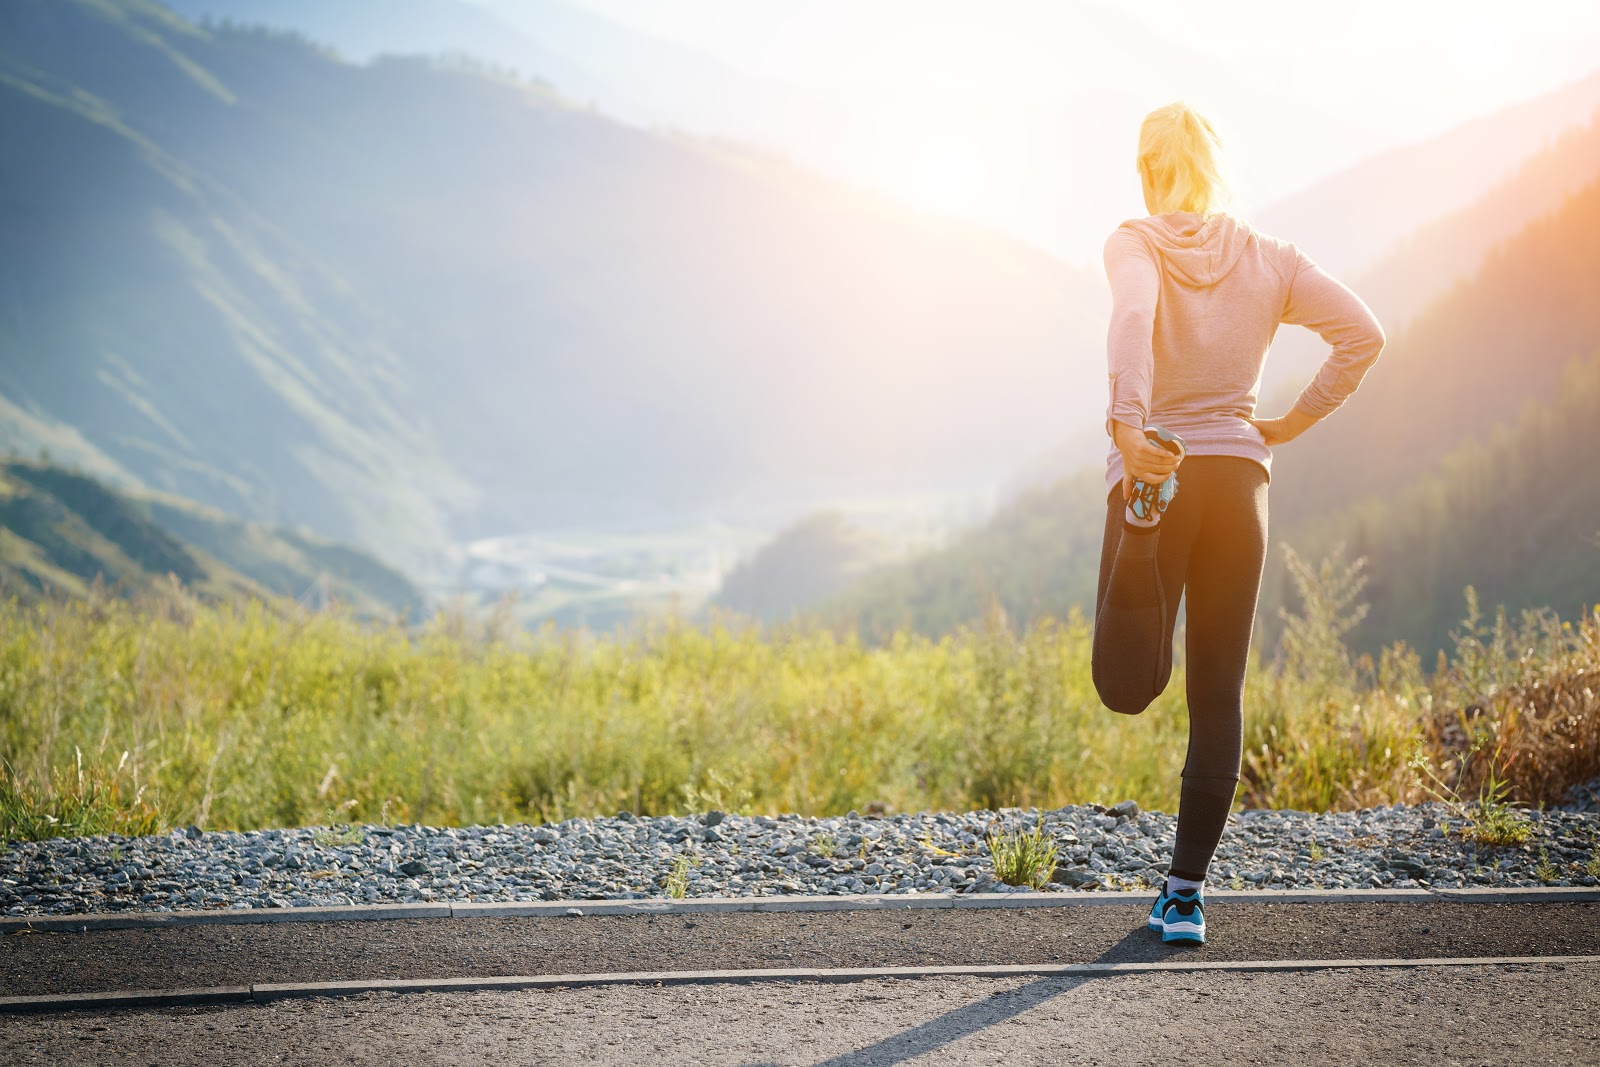 A woman on an open road with mountain scenery, preparing to exercise